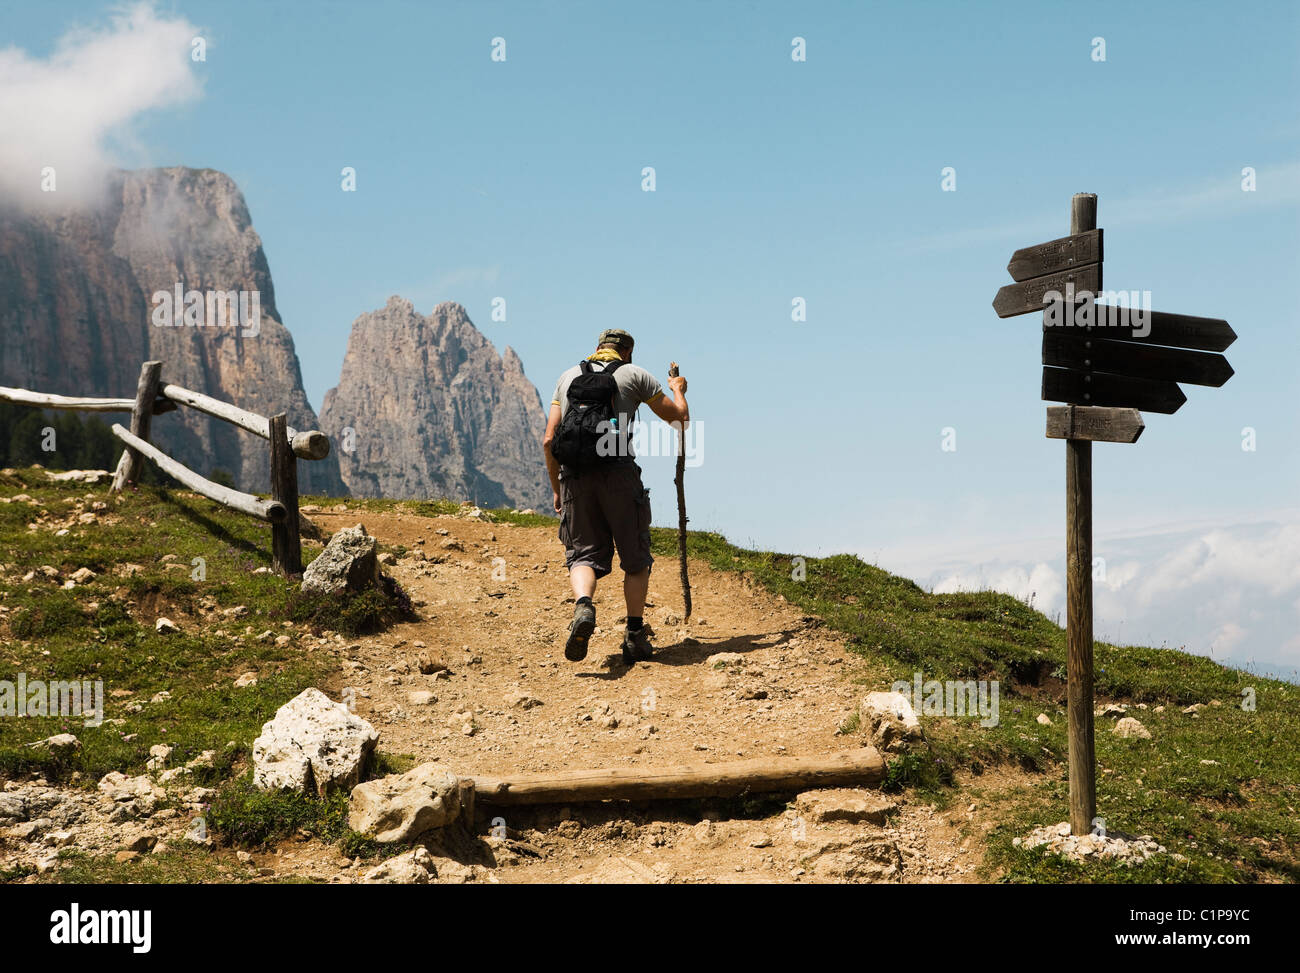 Backpacker on mountain trail - Stock Image